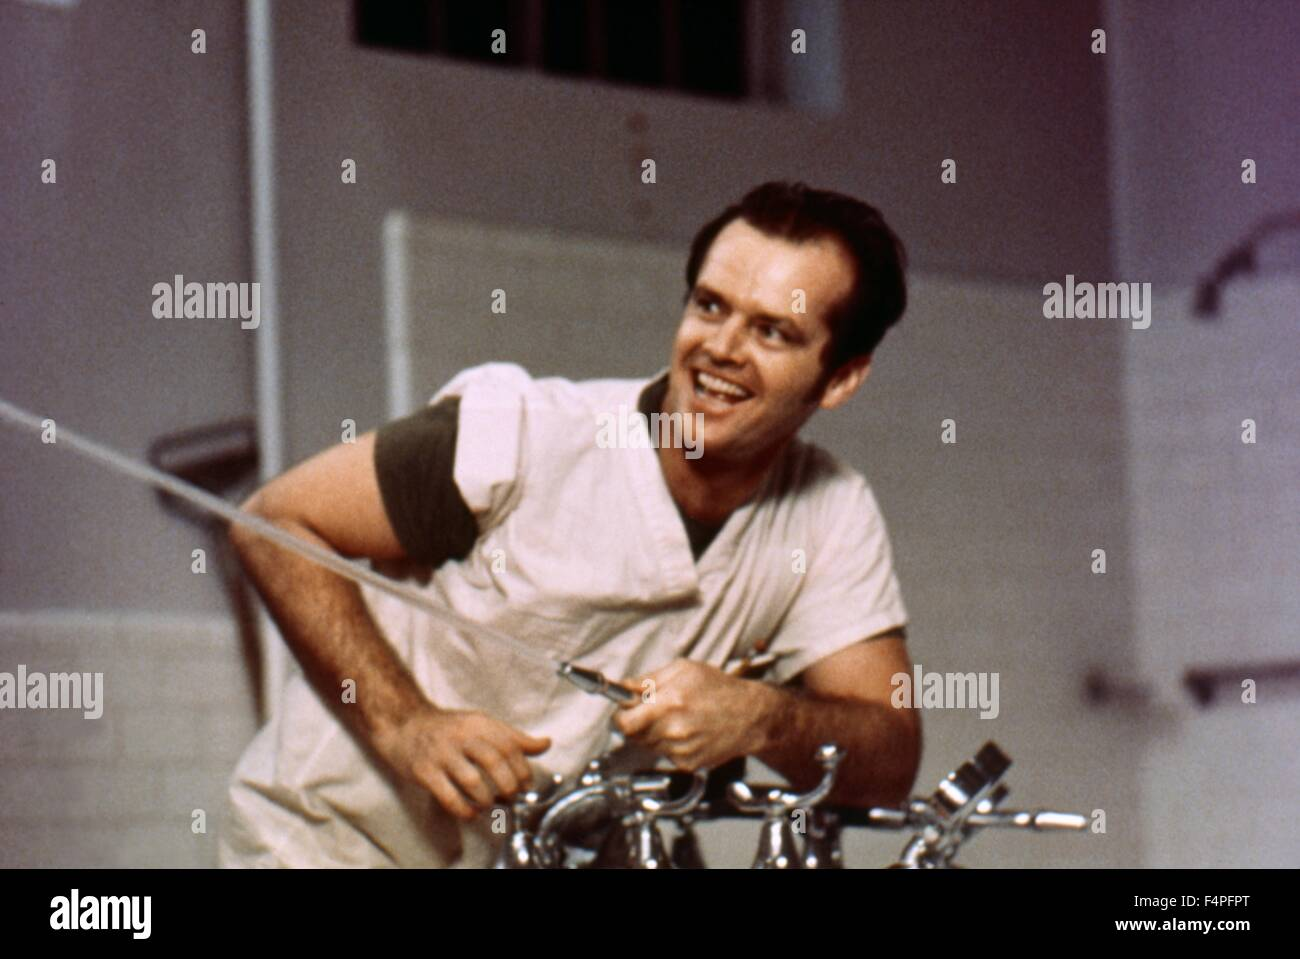 Jack Nicholson / One Flew Over the Cuckoo's Nest / 1975 directed by Milos Forman - Stock Image